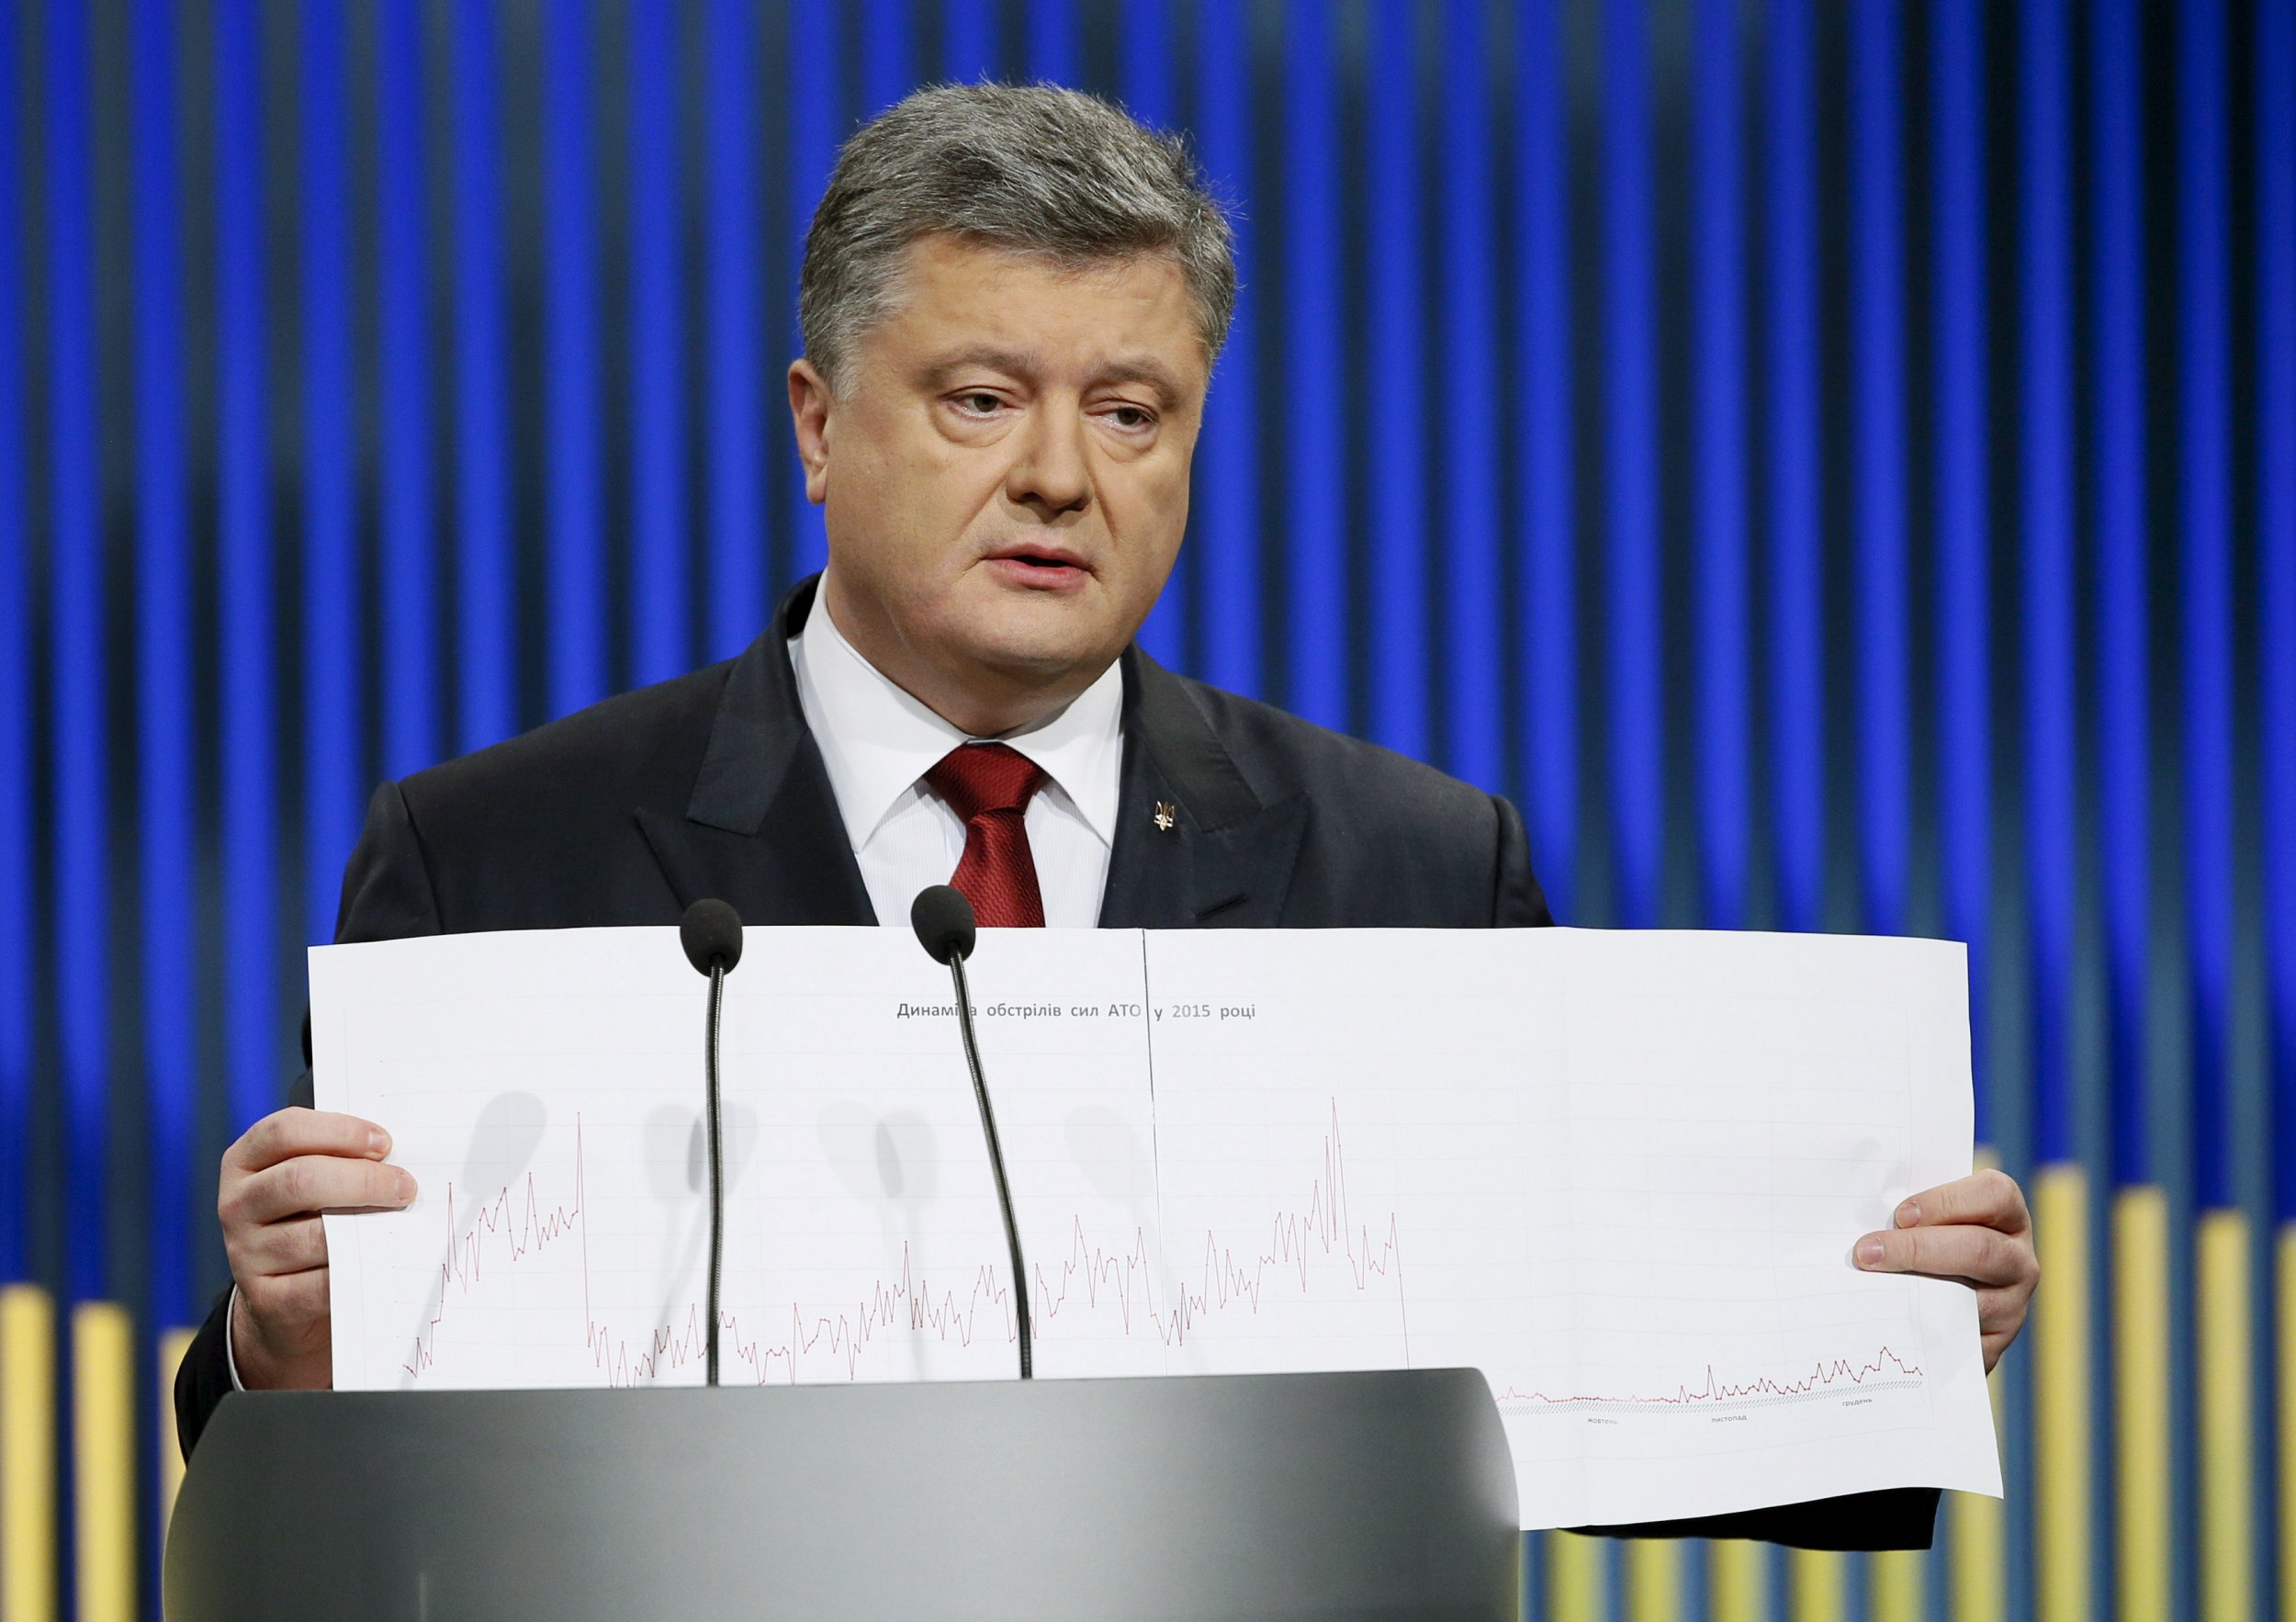 Has Ukraine's President forgotten how to speak Ukrainian?